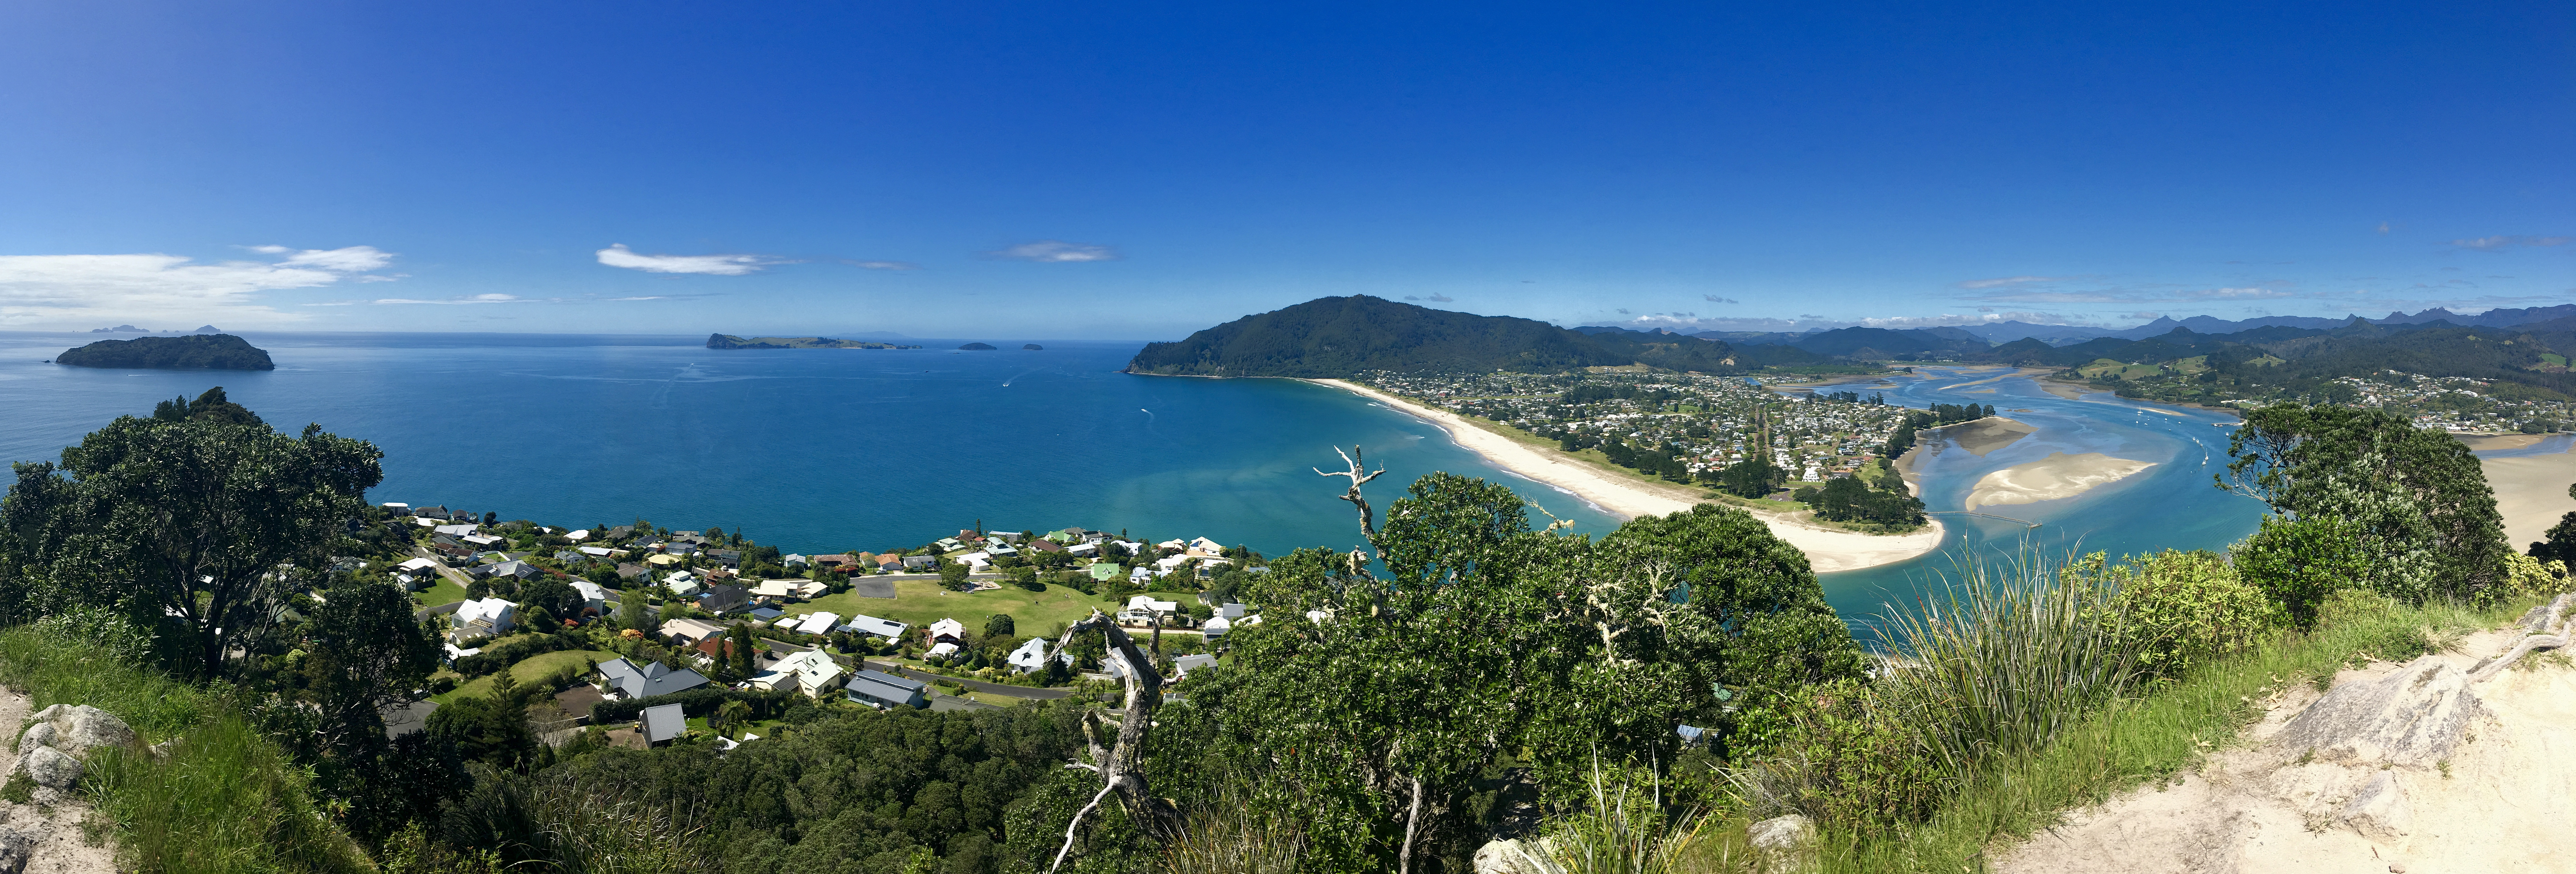 Mount Paku Summit, Tairua